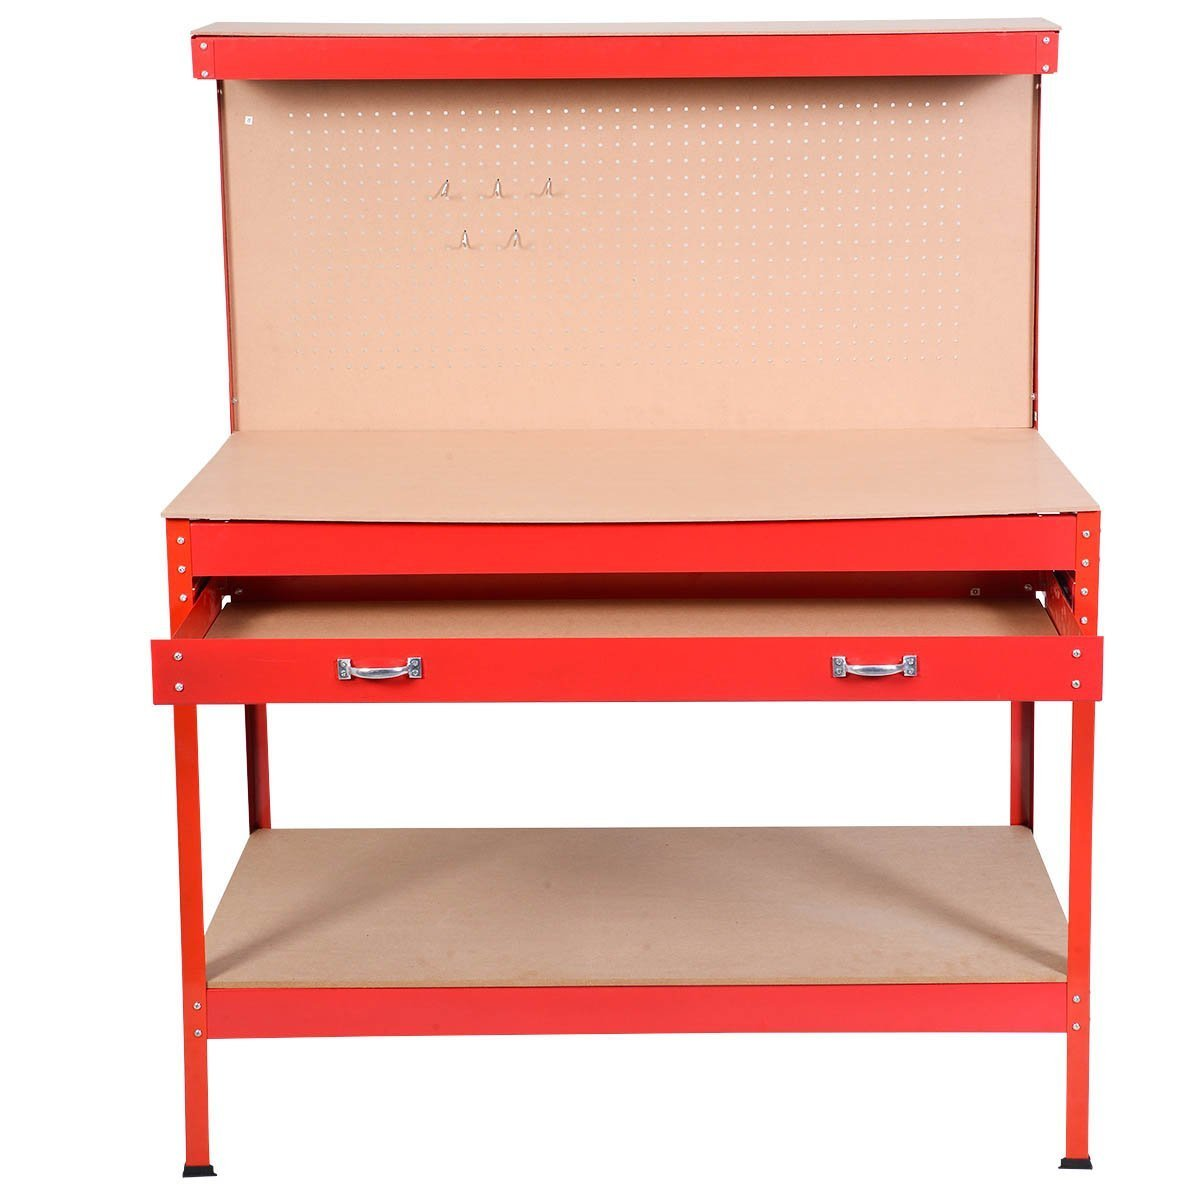 Goplus Steel Workbench Tool Storage Work Bench Workshop Tools Table W/Drawer and Peg Board (Red)